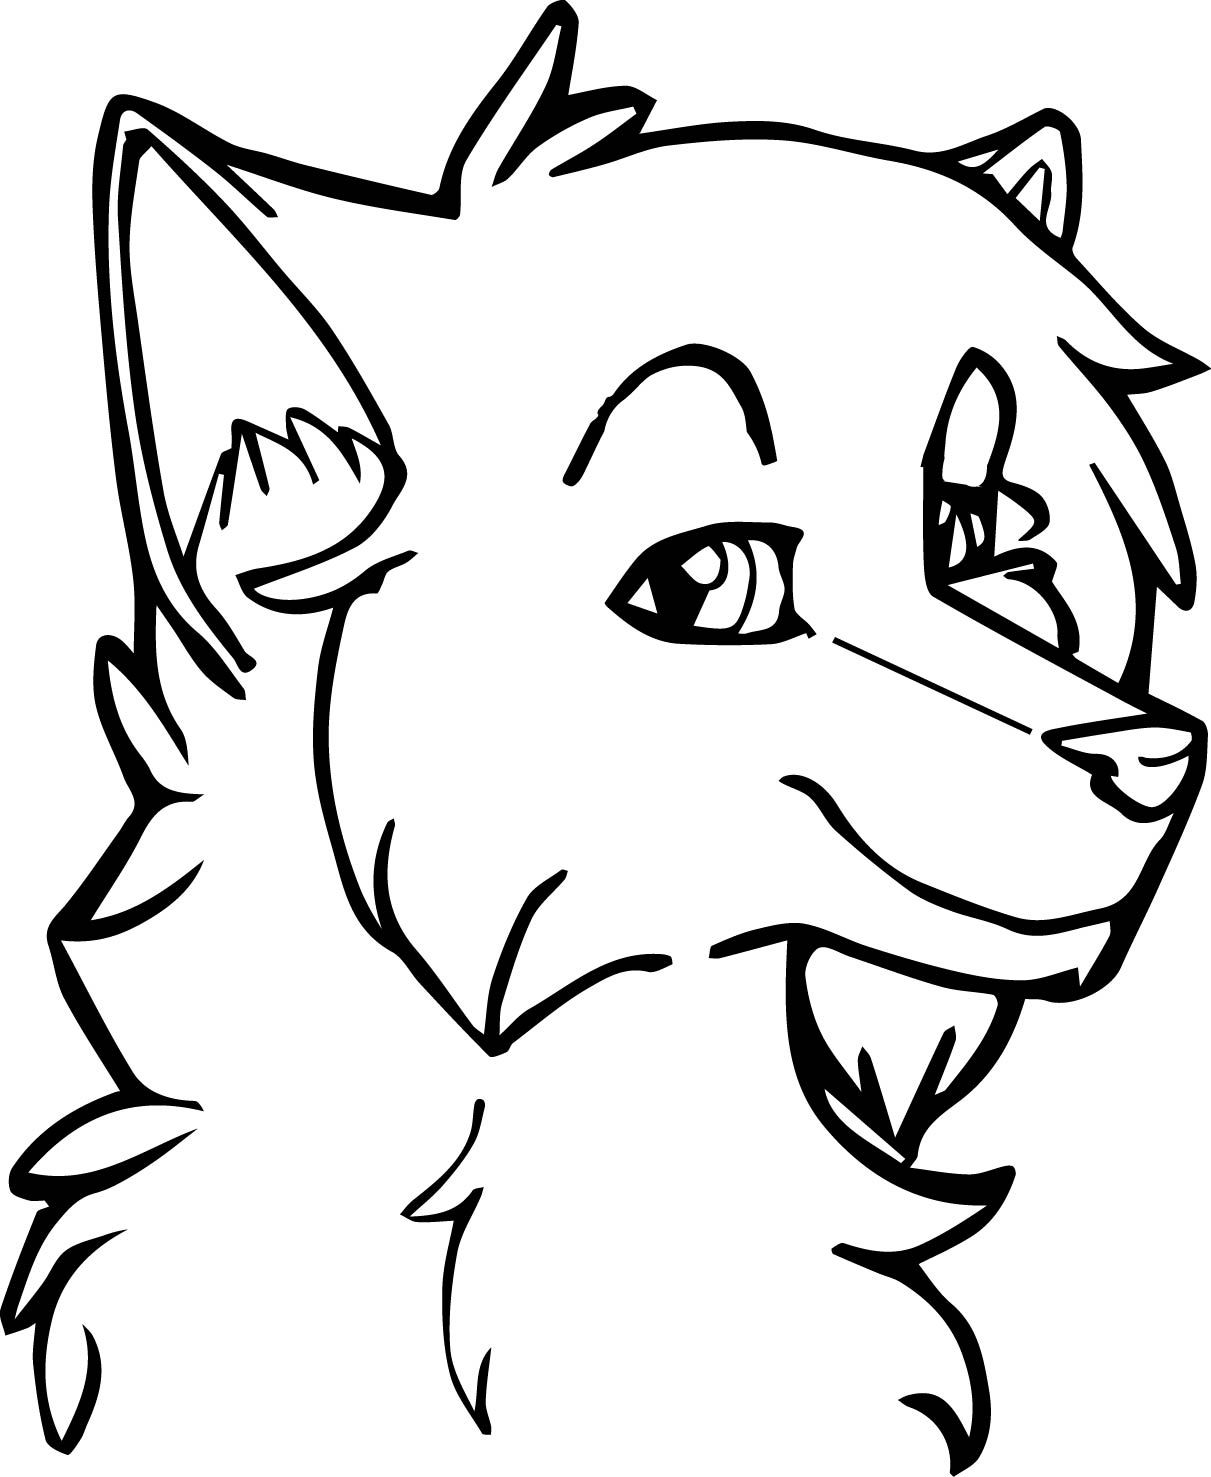 Colouring in pages wolf - Cool Female Wolf Coloring Pages Check More At Http Wecoloringpage Com